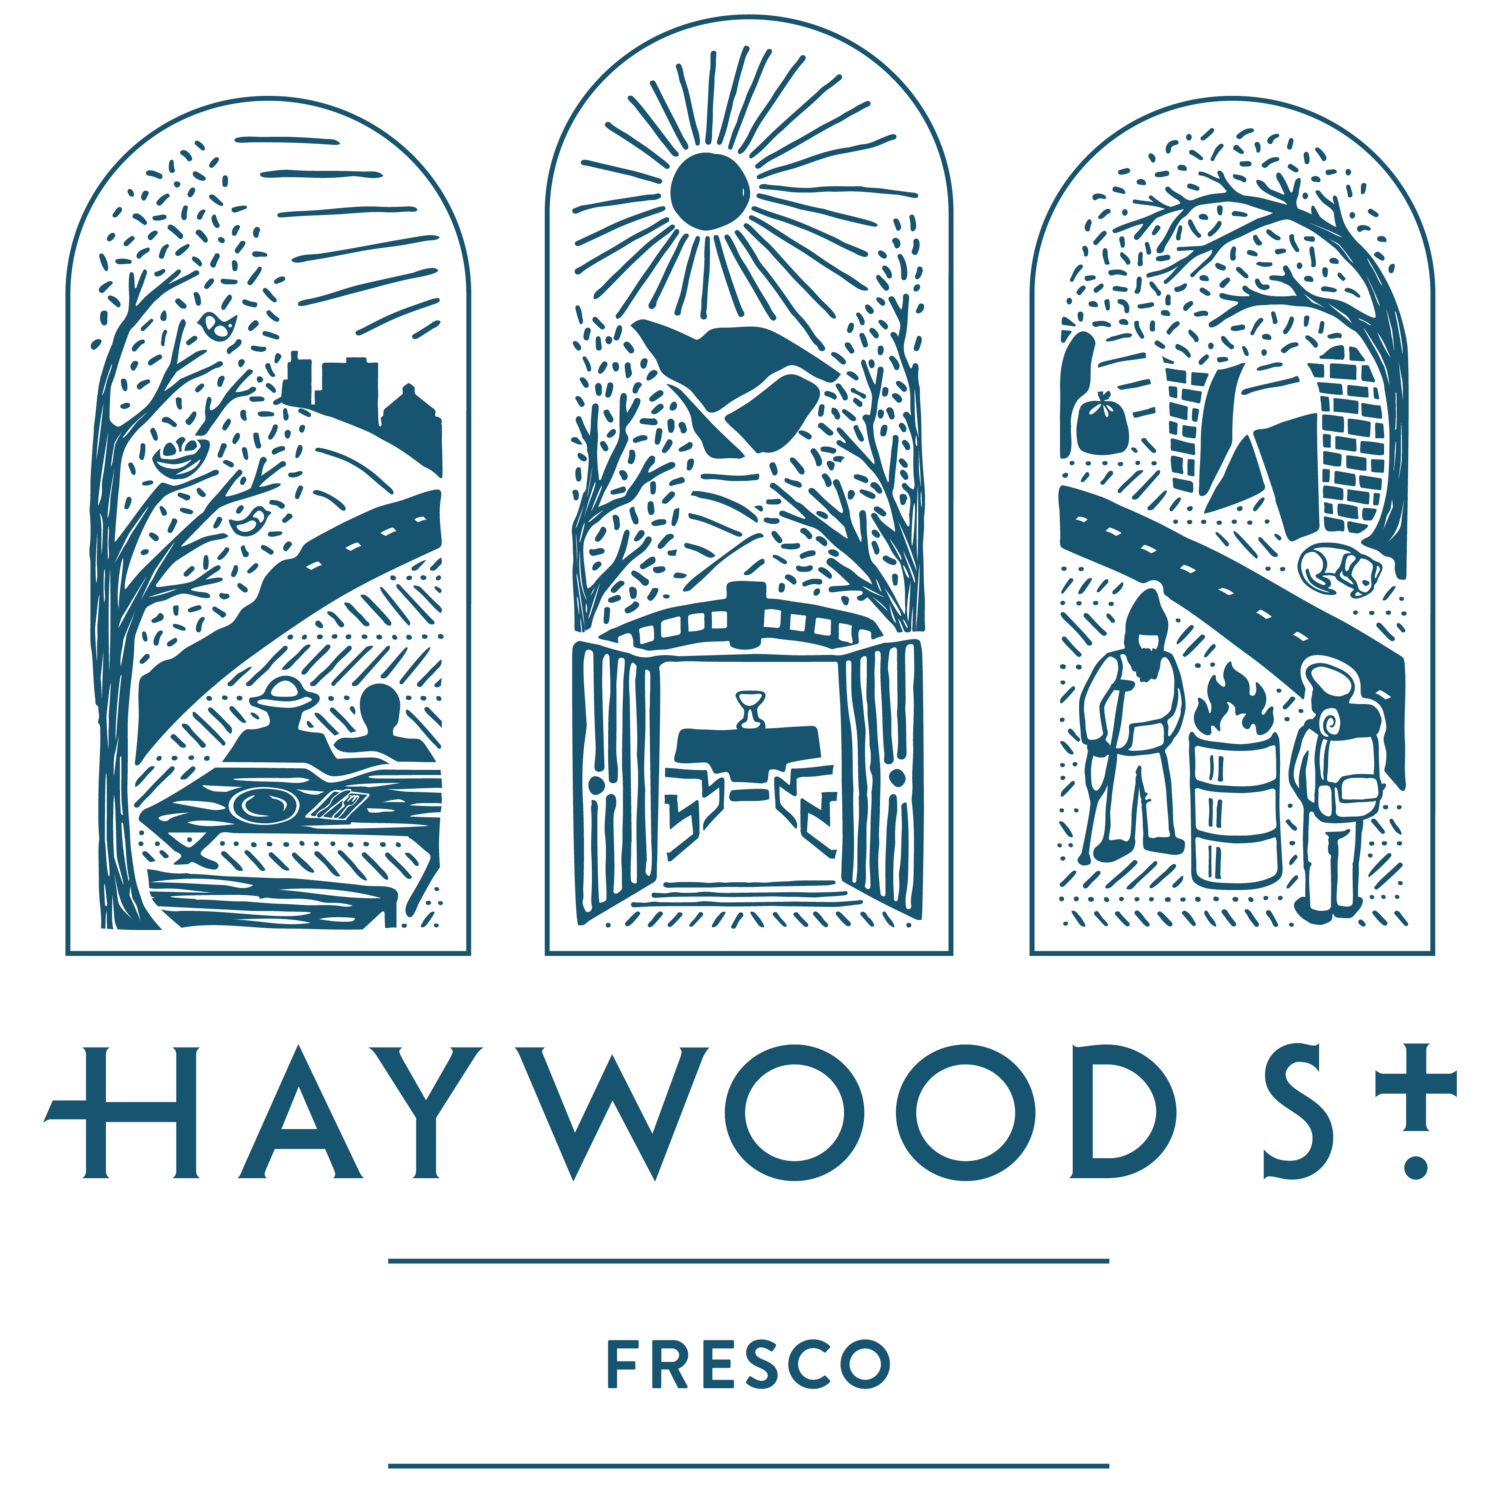 The Haywood Street Fresco